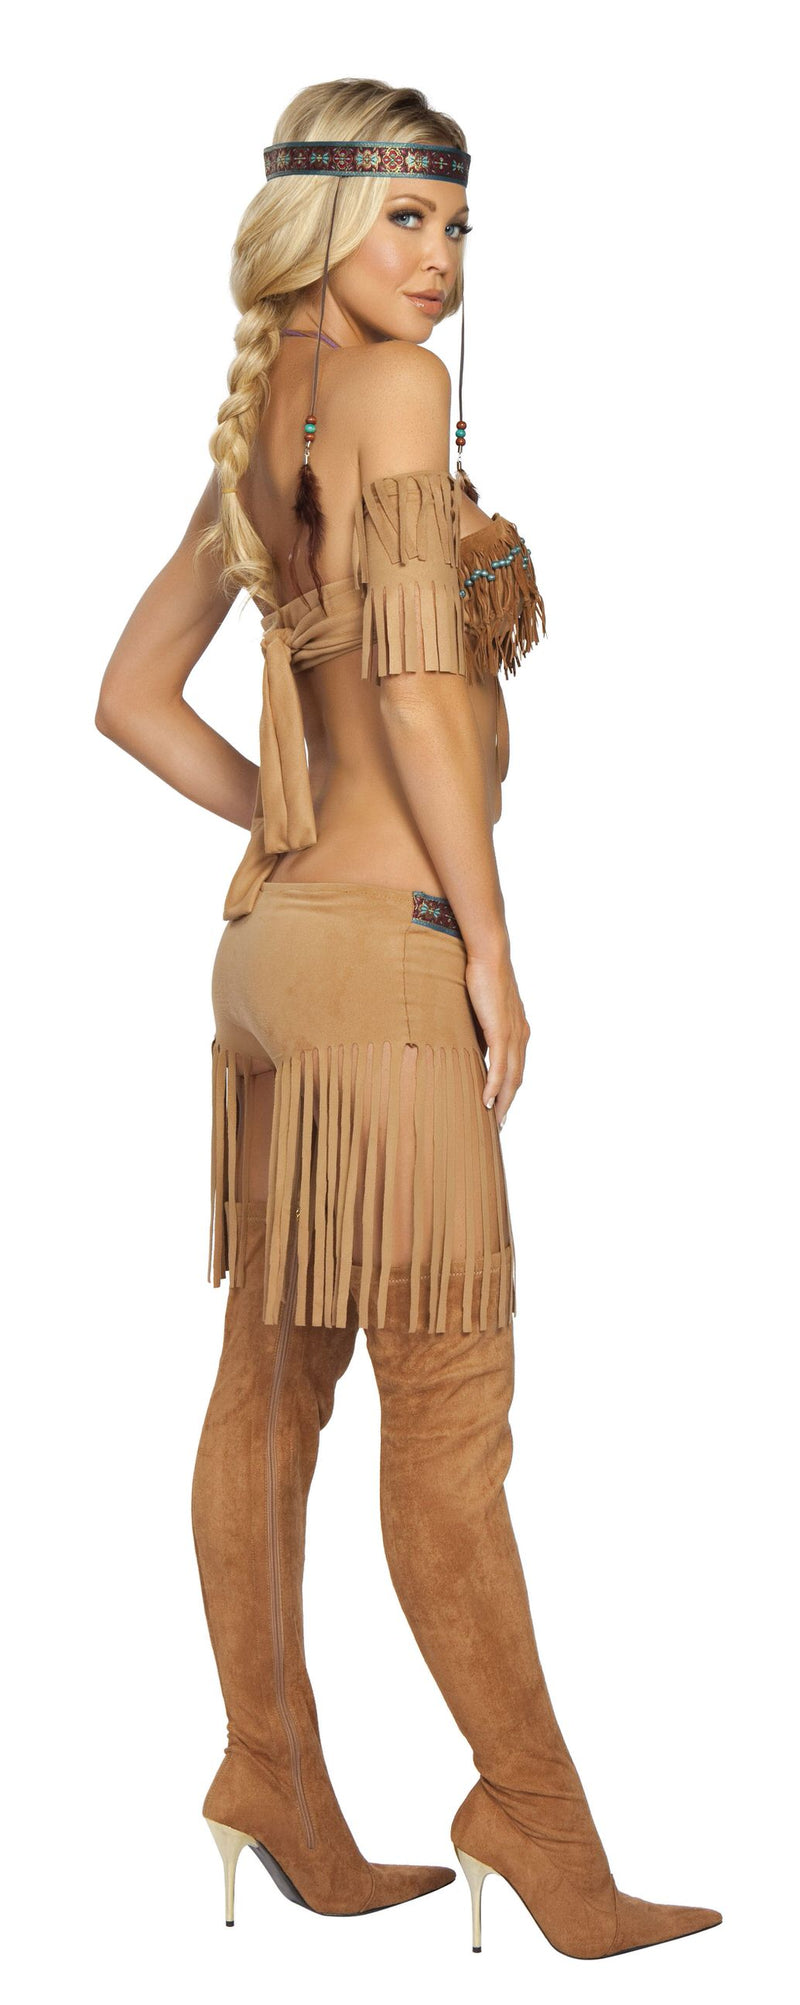 5 Piece Indian Princess Beaded Top & Fringe Shorts Costume - Fest Threads